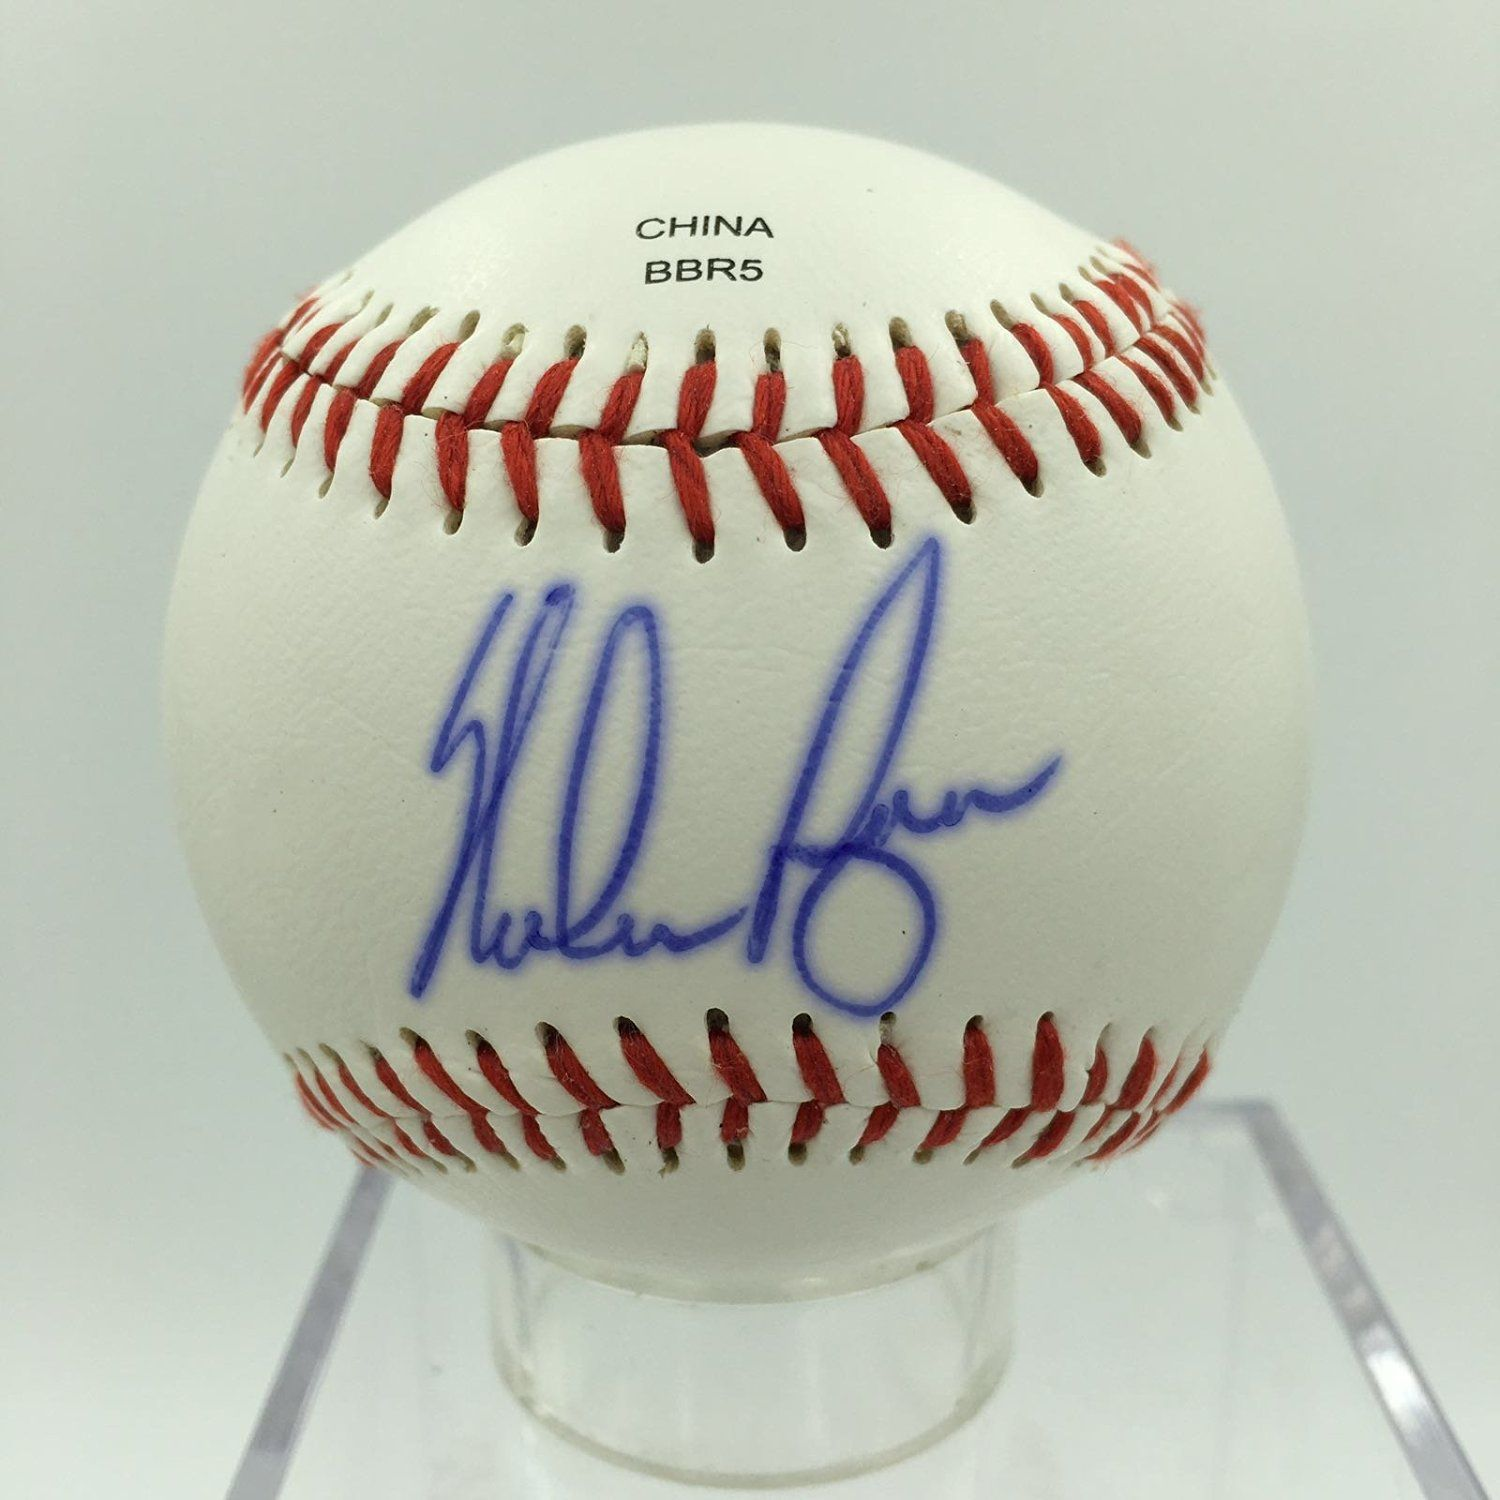 Nolan Ryan Signed Autographed Official Rawlings Baseball With Psa Dna Certificate Of Authenticity Coa Roll Over Image To Rawlings Baseball Rawlings Nolan Ryan